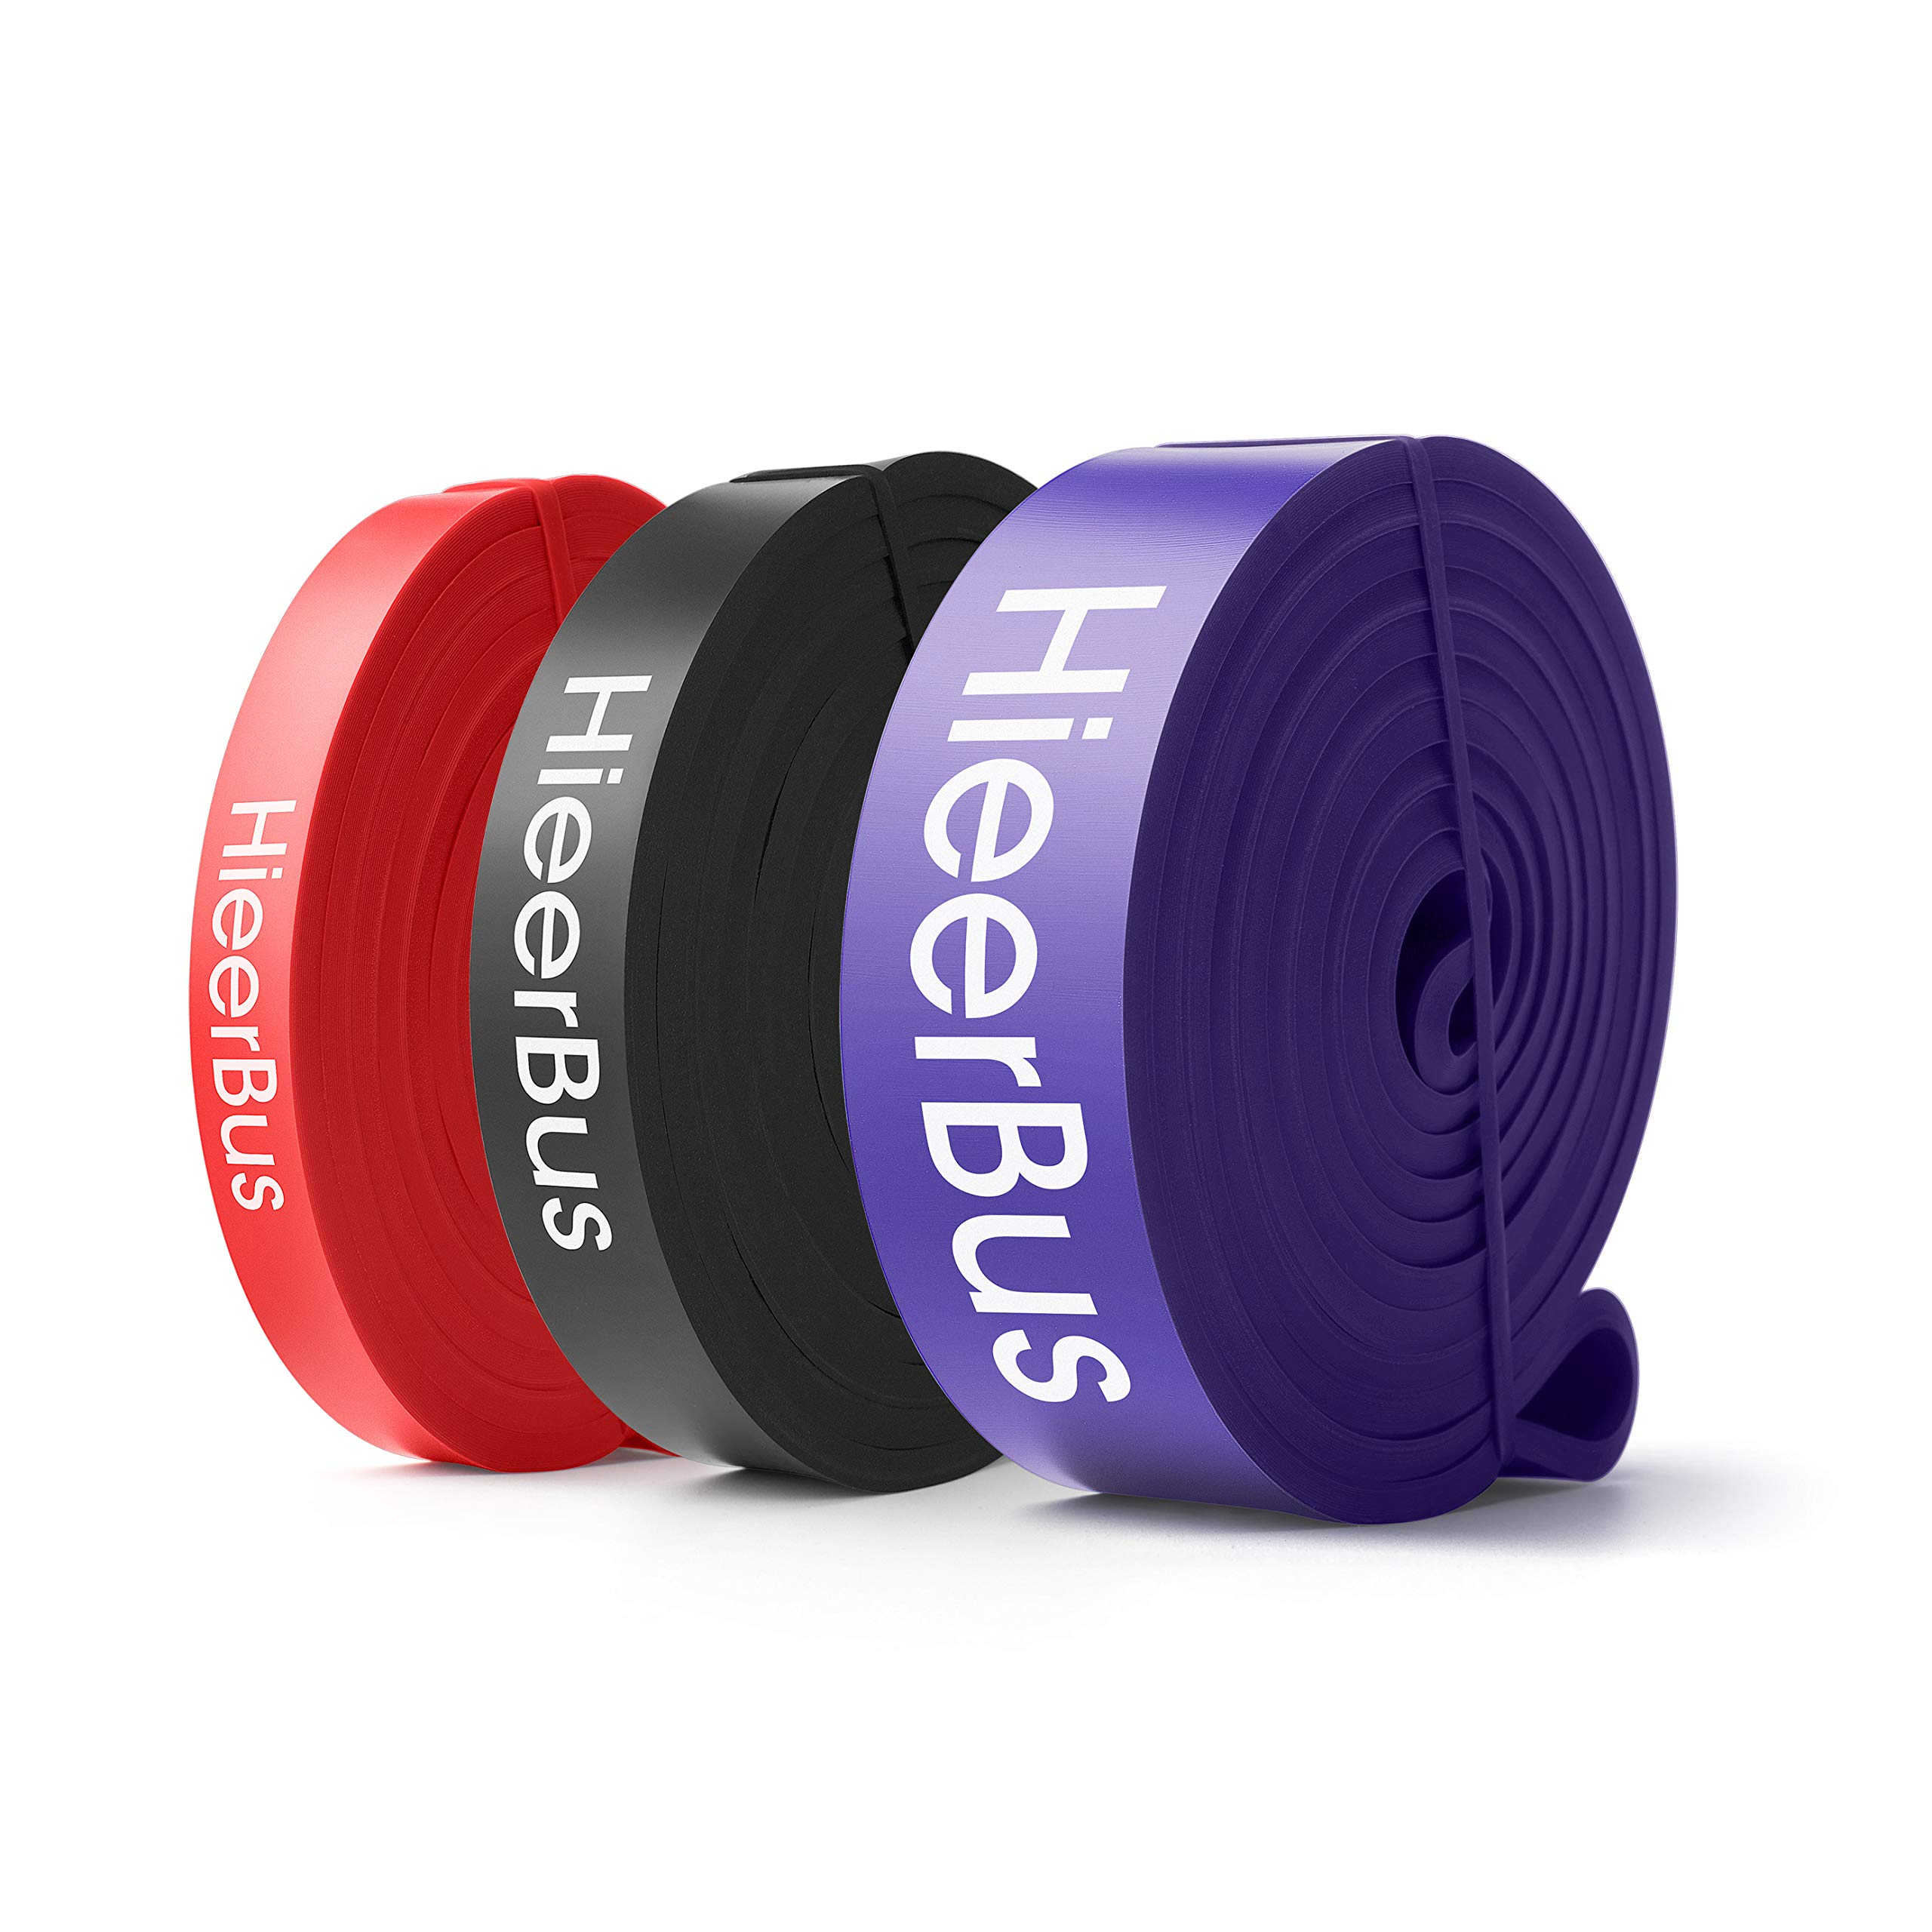 HieerBus Pull Up Bands,Resistant Workout Bands, Pull Up Assist Band Stretch Exercise Resistance Band Rope for Body…